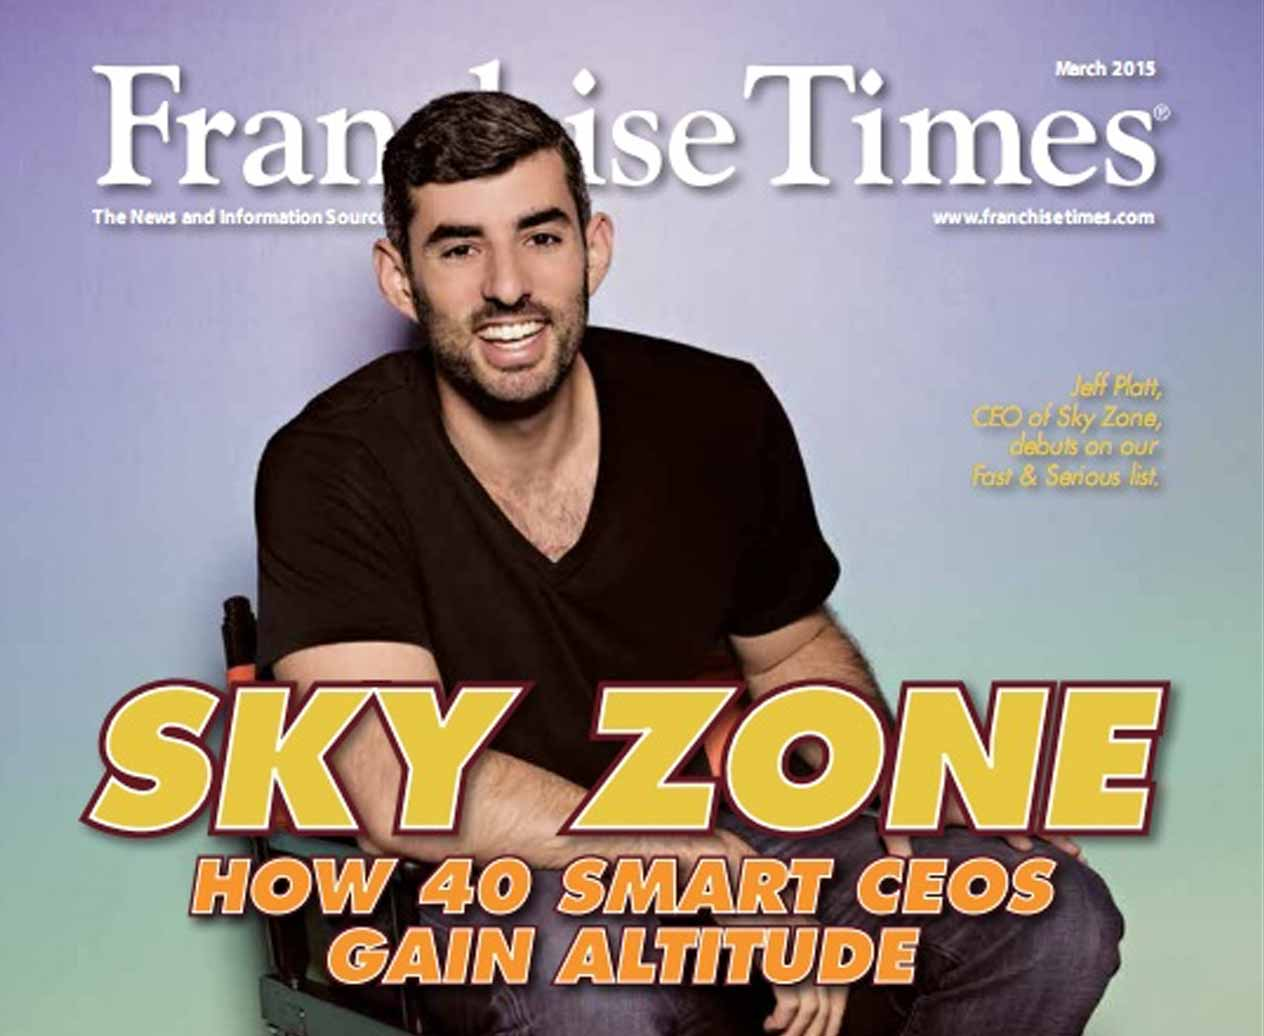 Jeff Platt on Franchise Times Fast and Serious list for Sky Zone